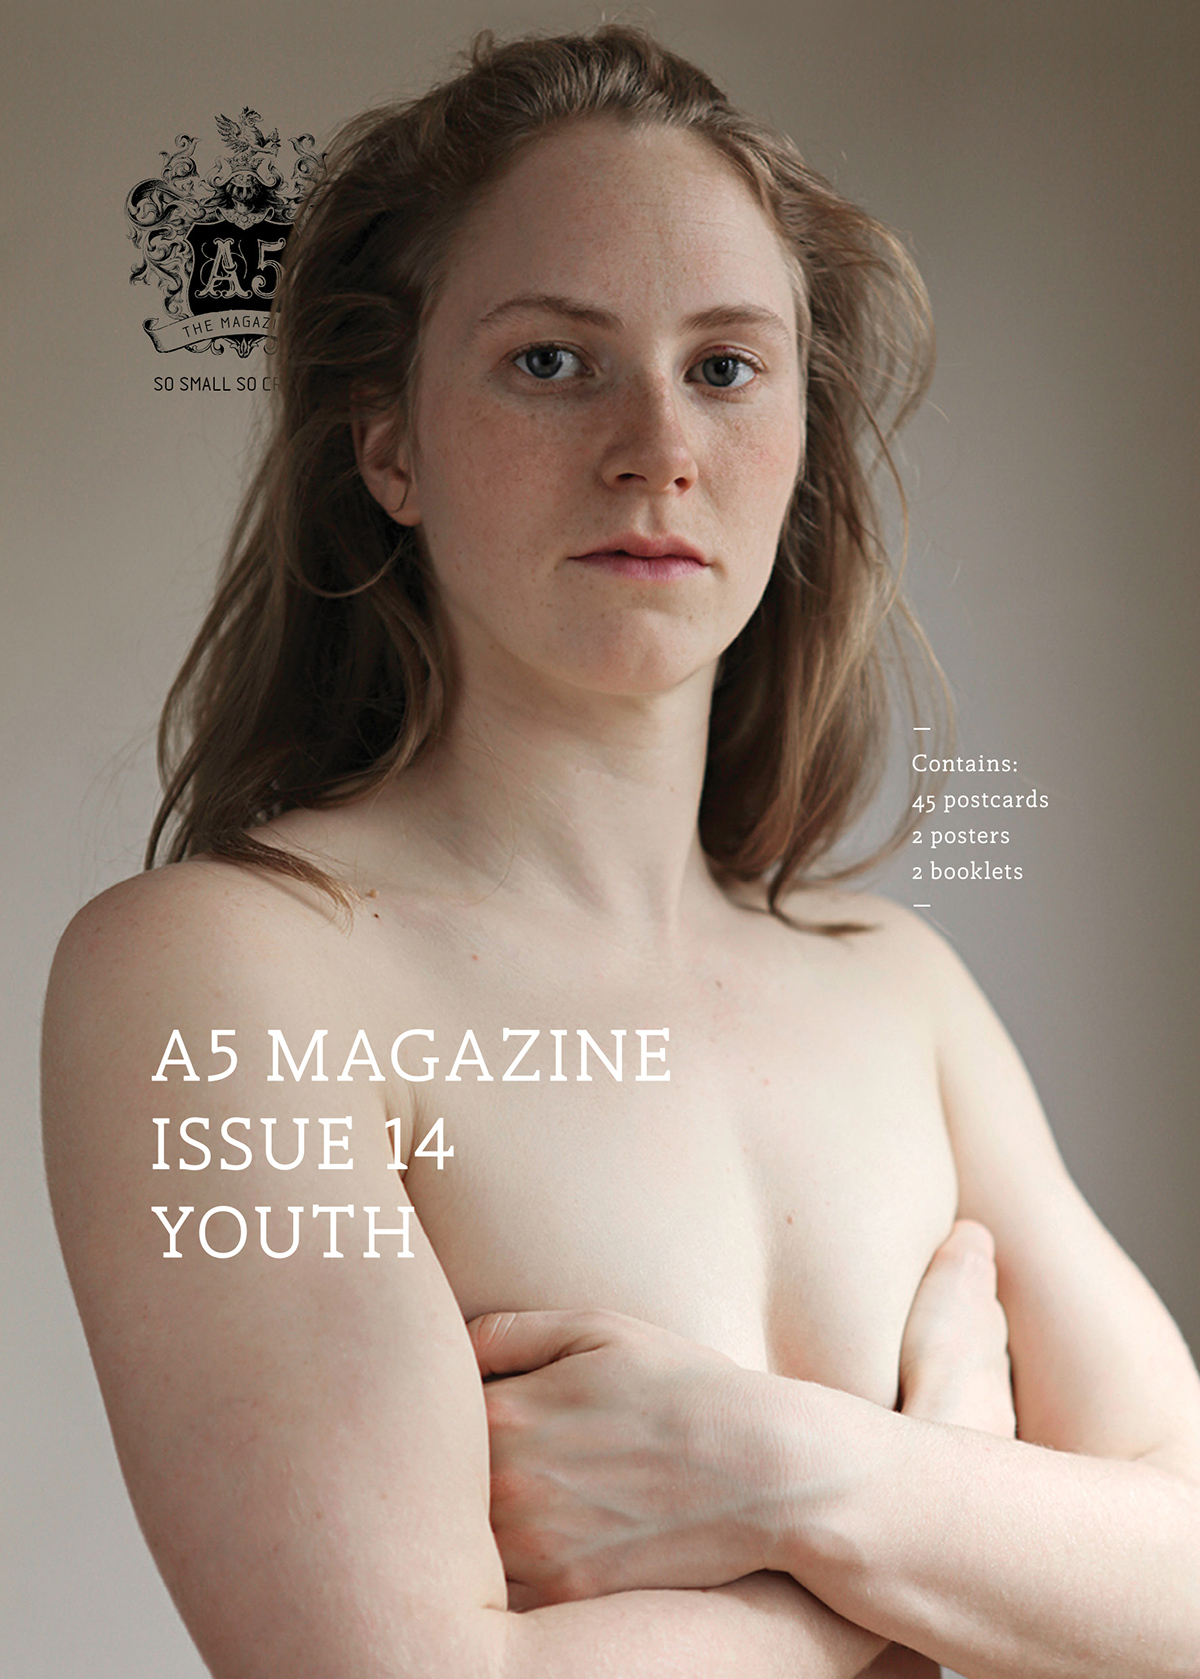 a5-magazine-yout-issue-front-cover